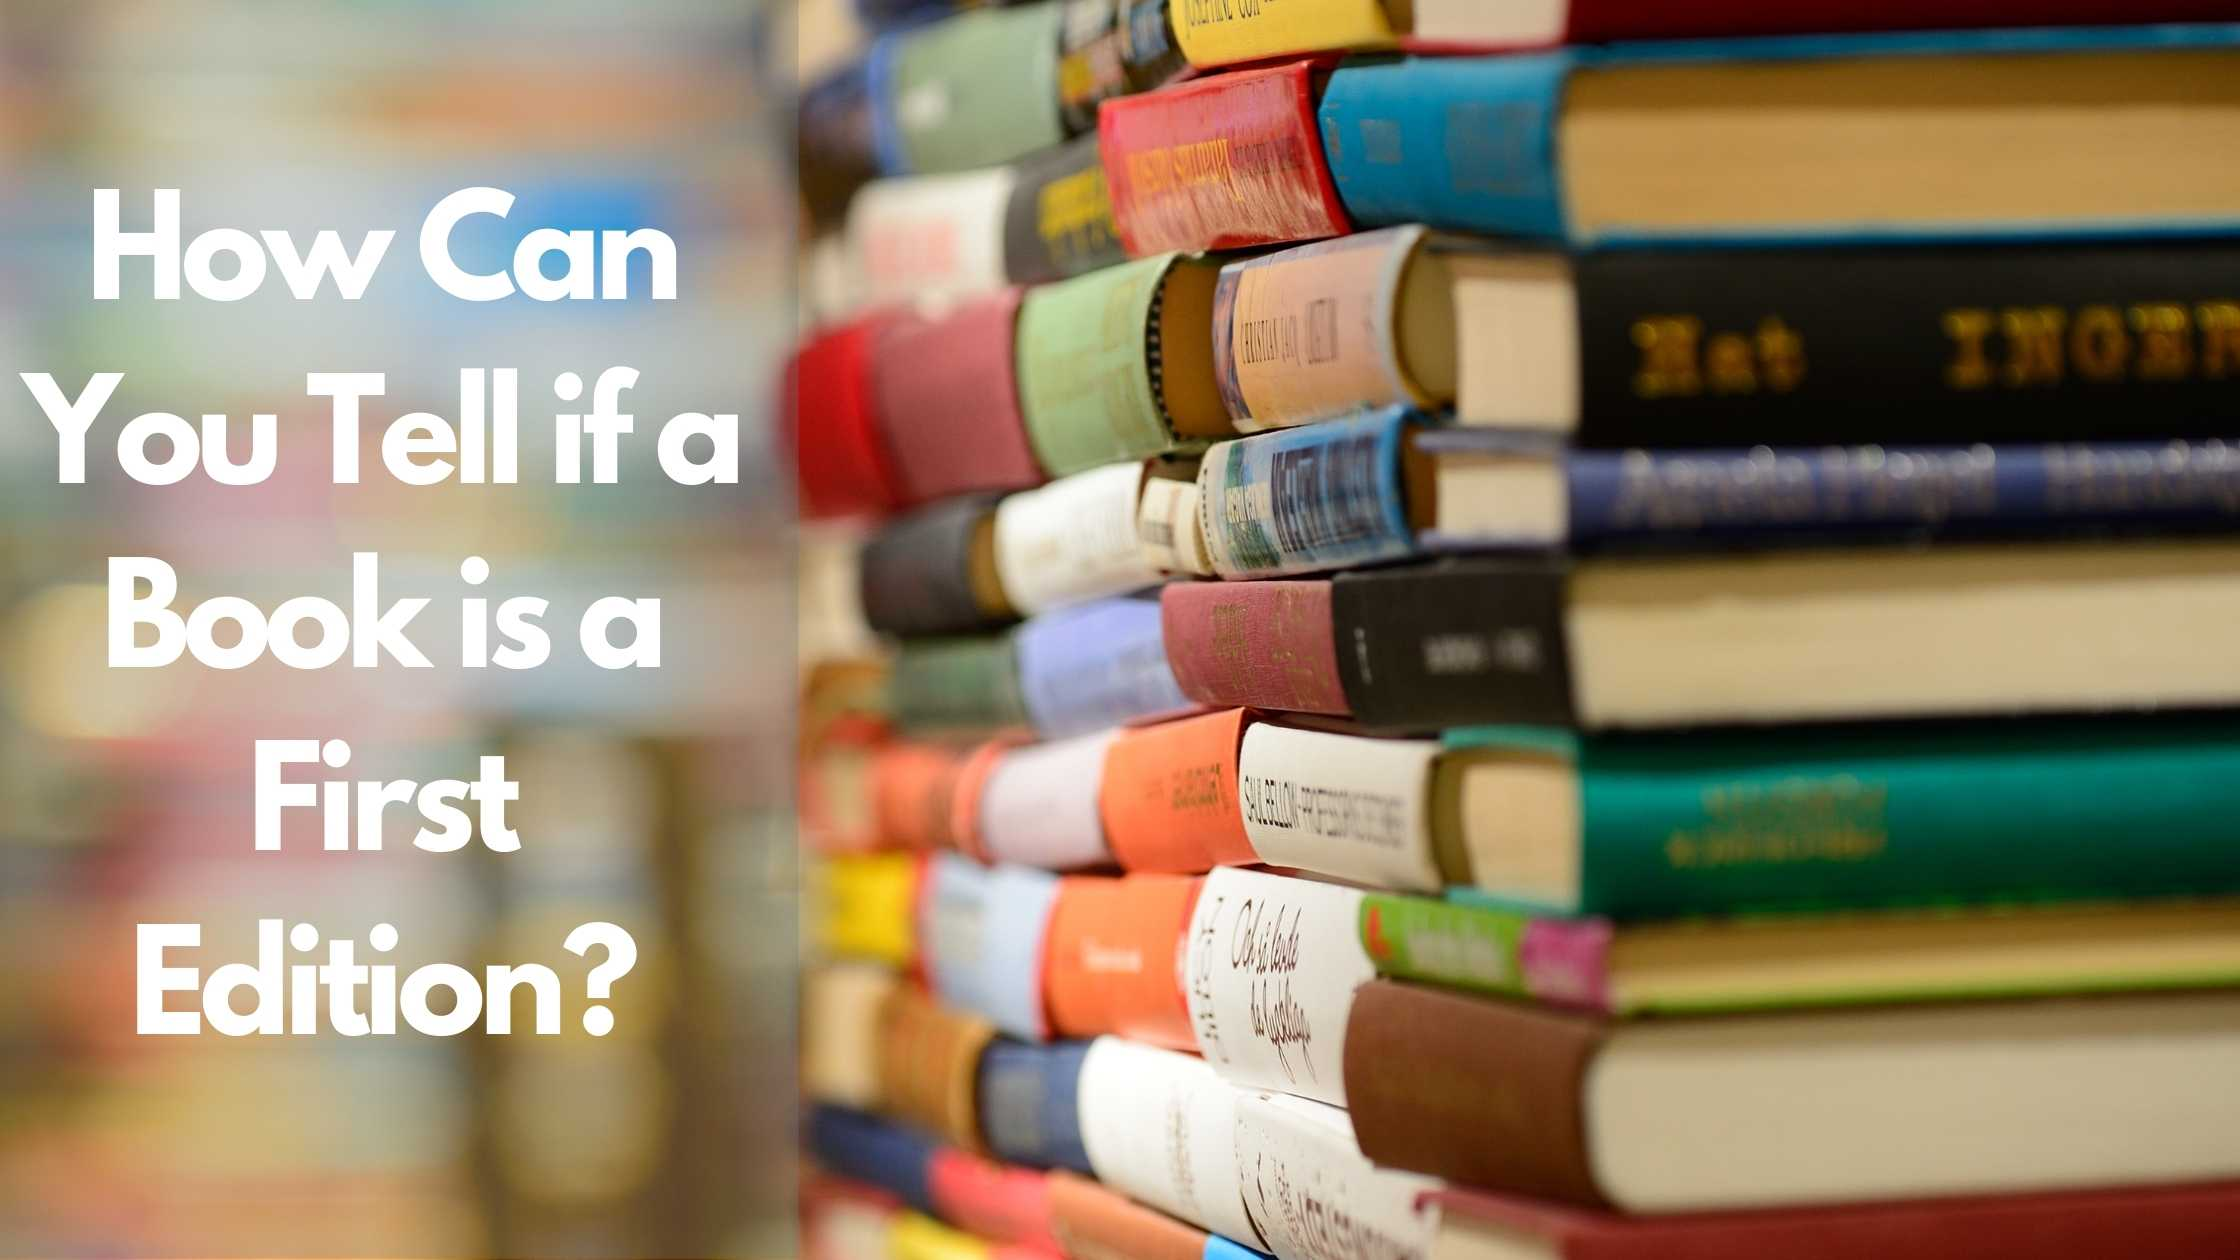 How can you tell if a book is First edition